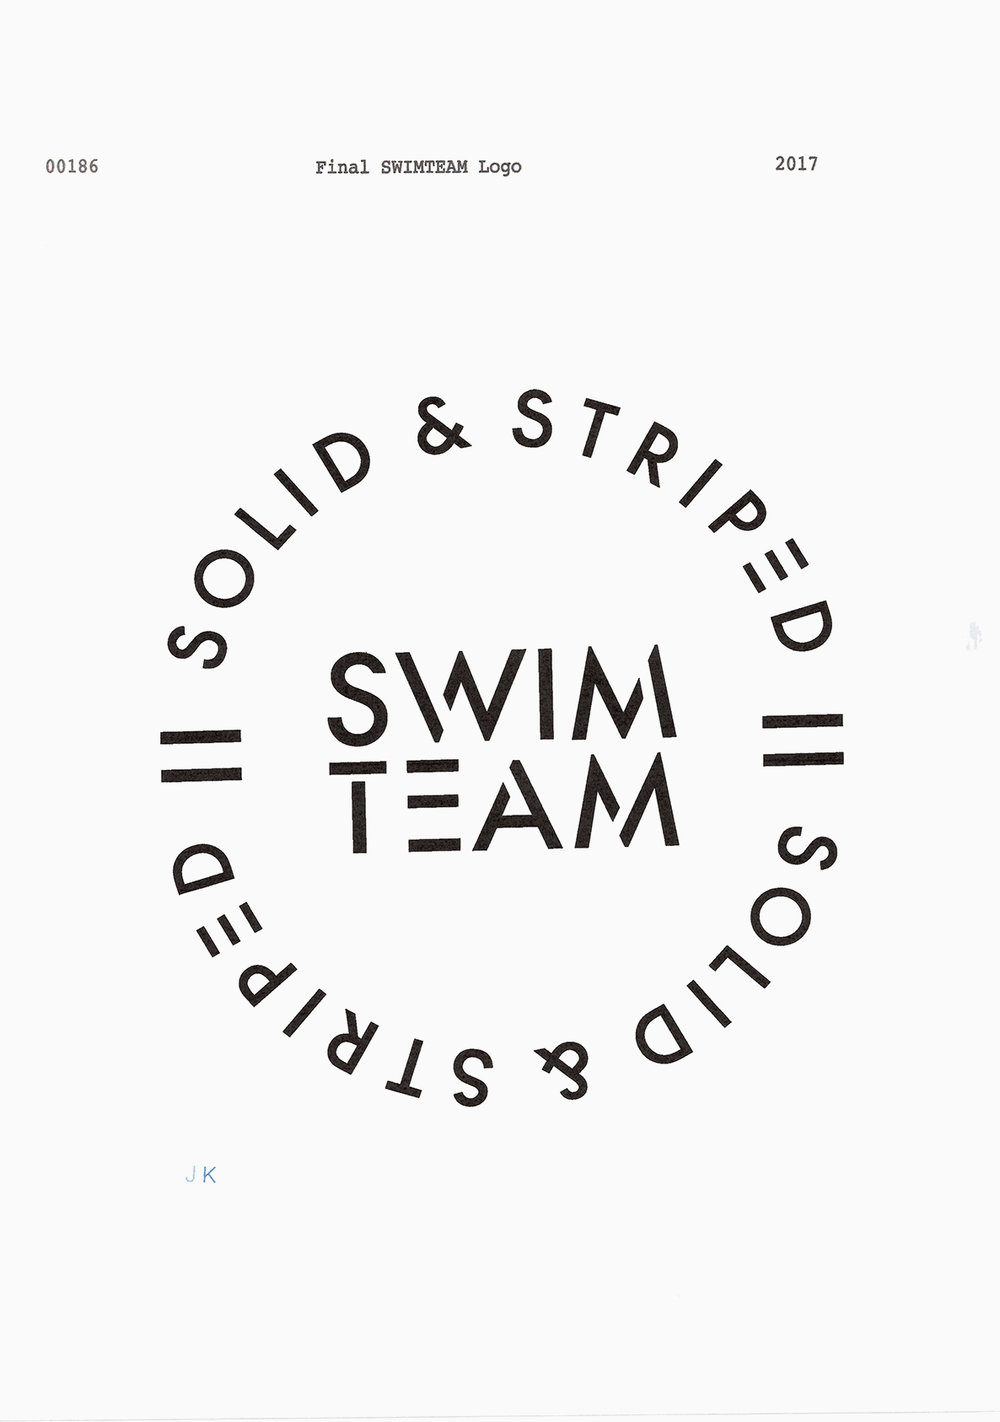 #solidandstriped #swimteam2018 #campaign #logo #typography #jimkaemmerling